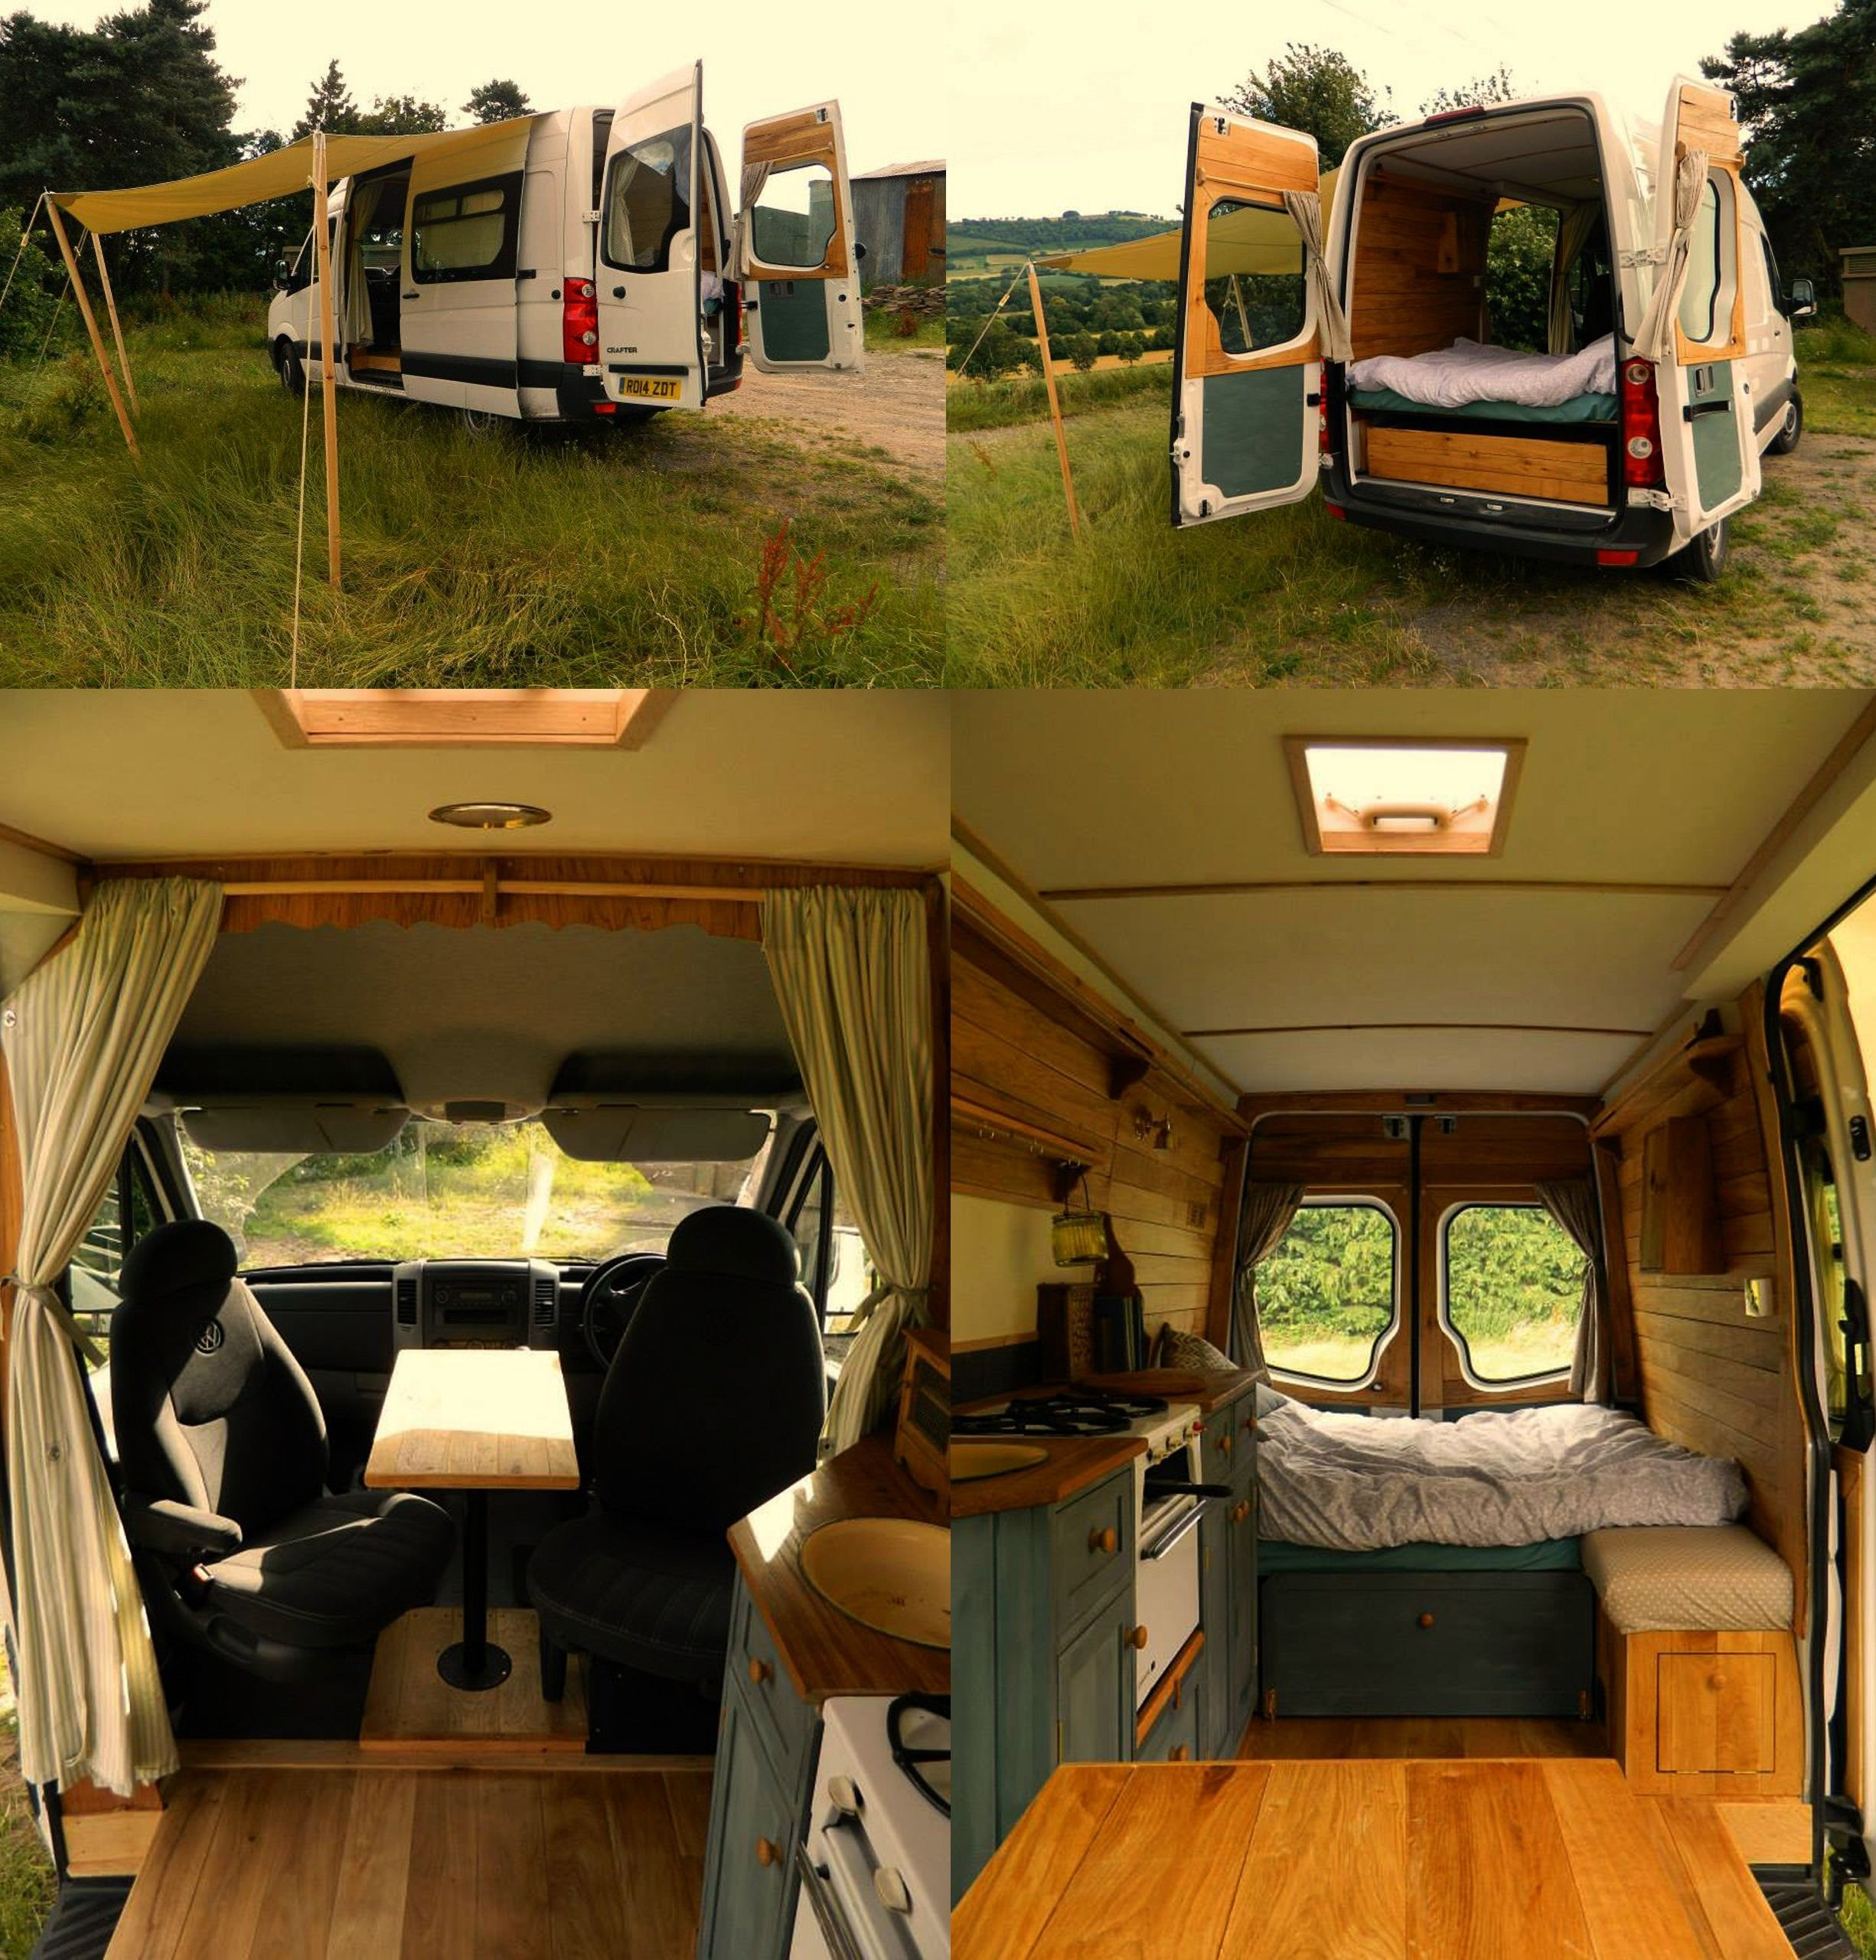 Crafter camper transformation by Rustic Campers. Great interior set up, spacious but not too big, p